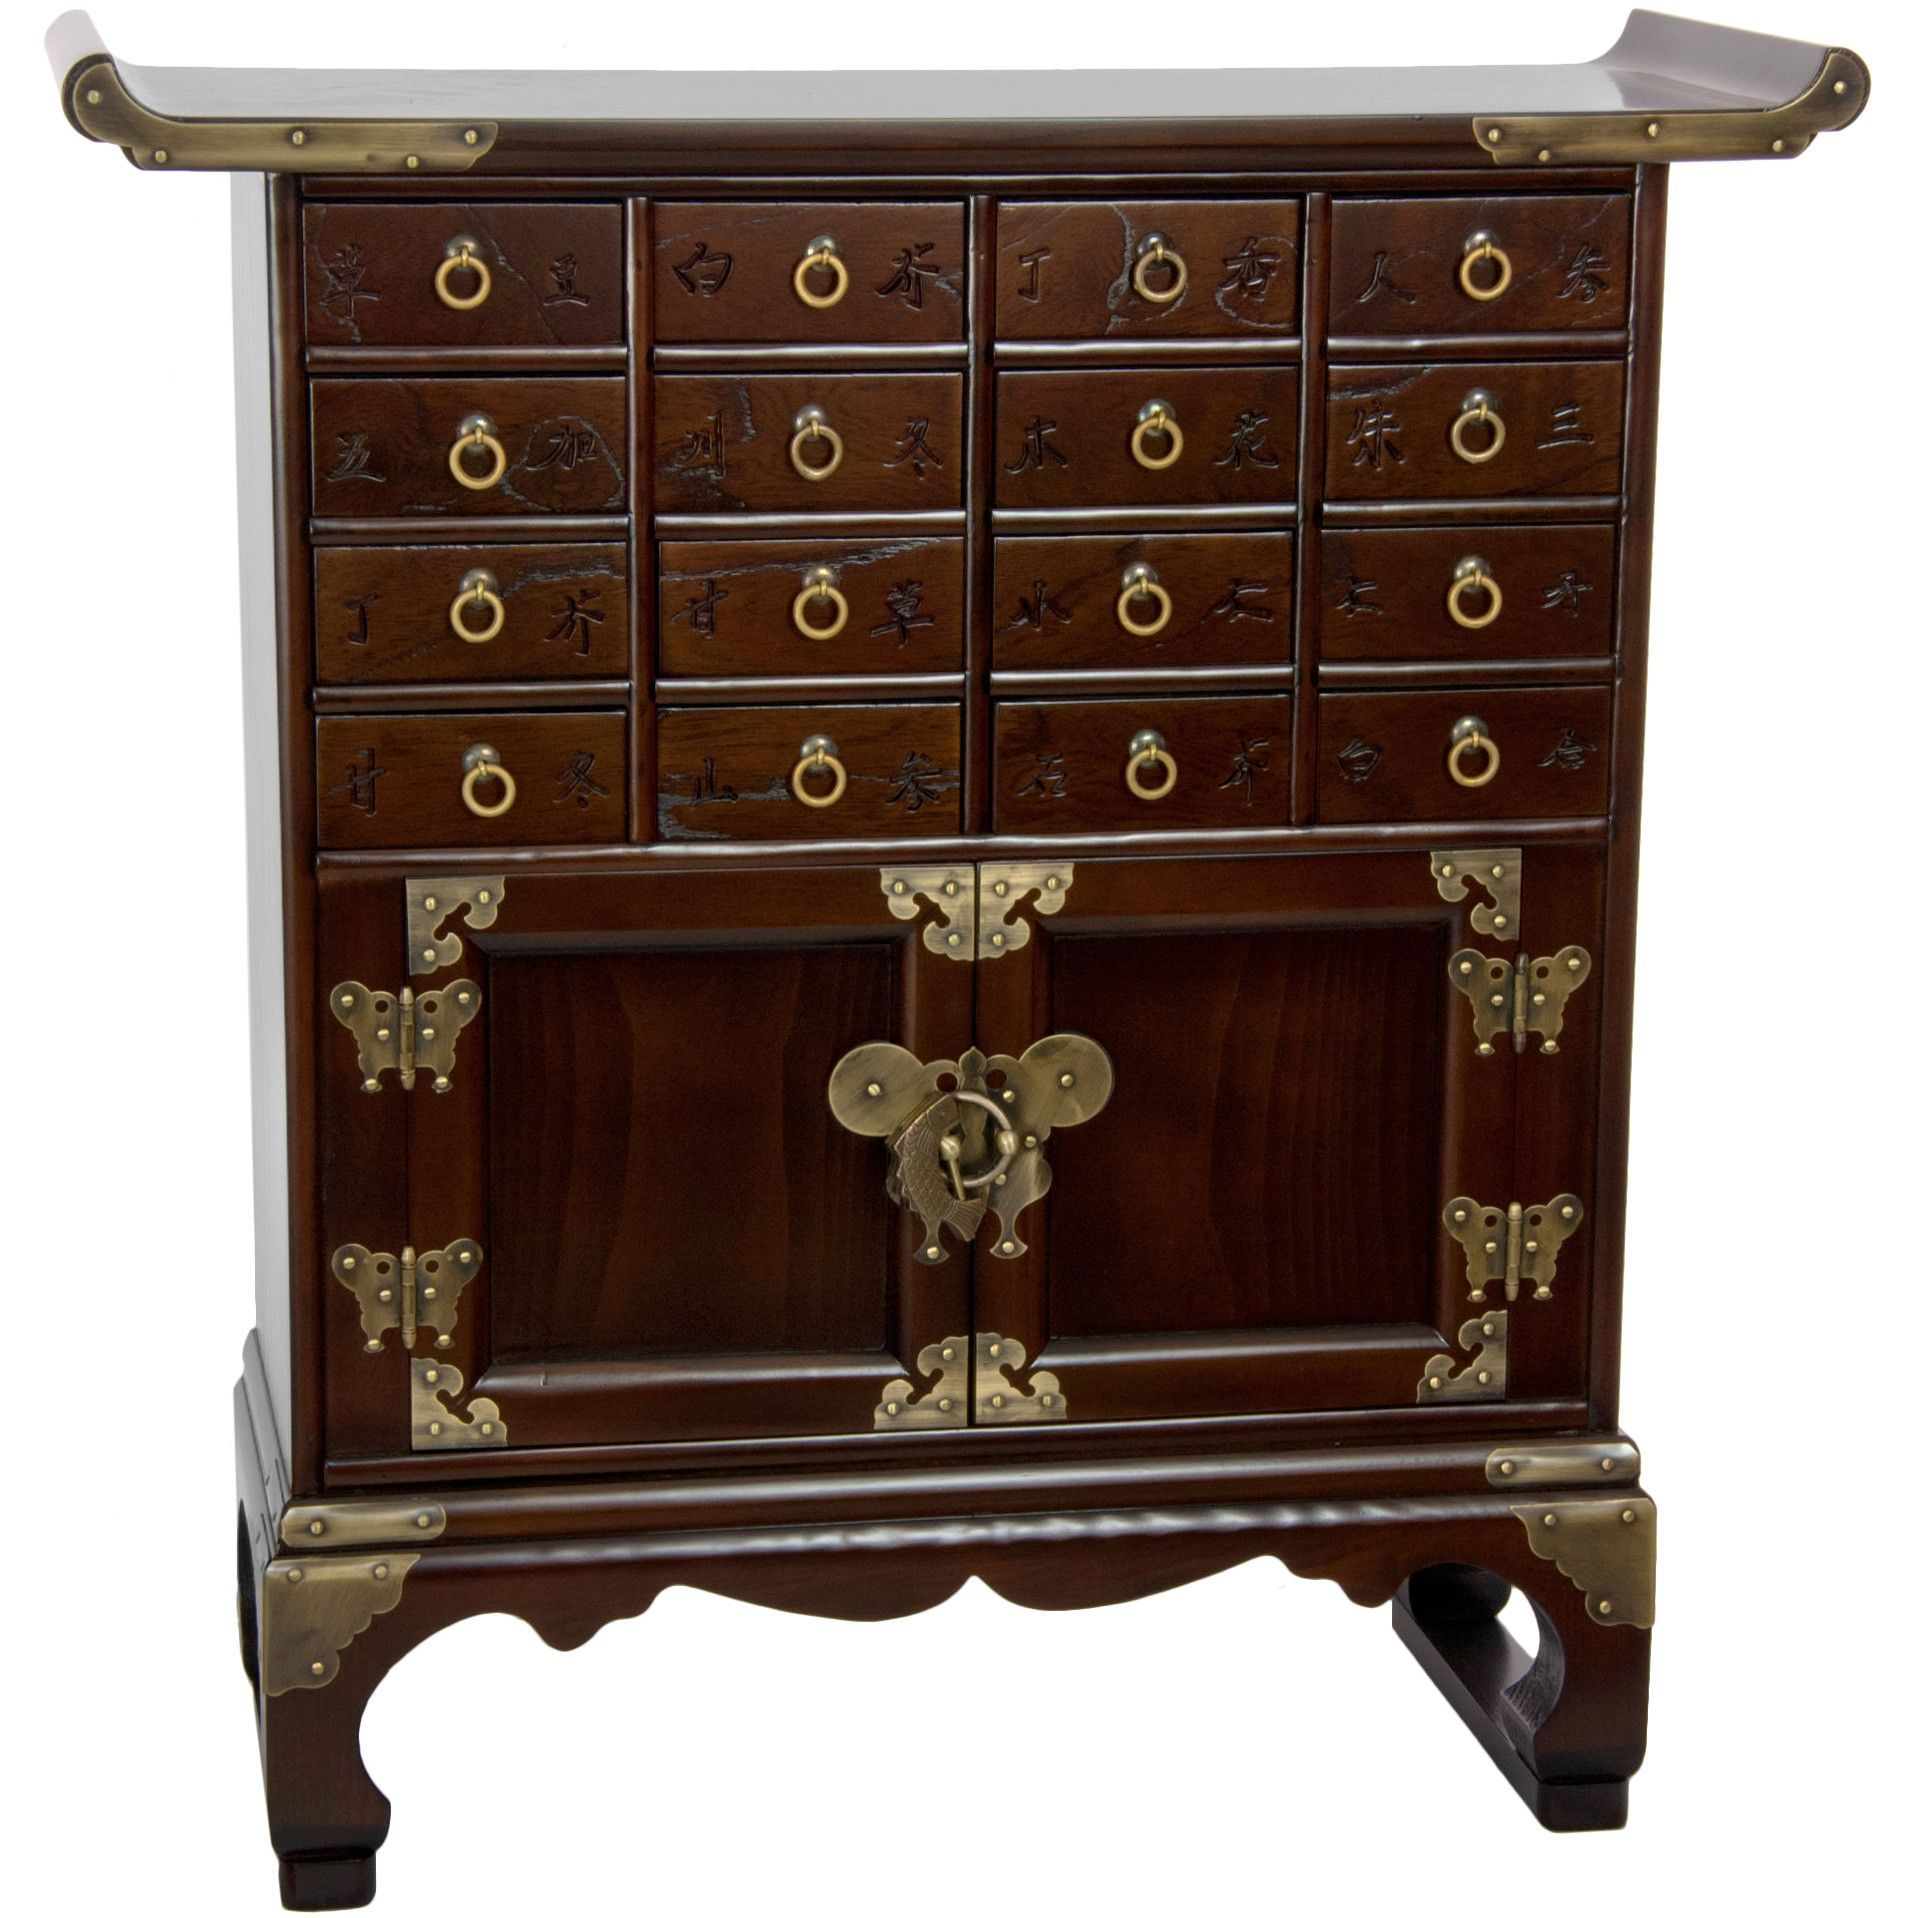 Oriental Furniture Korean 16 Drawer Medicine Chest   Impeccable  Craftsmanship And Attention To Detail Make This Oriental Furniture Korean  16 Drawer Medicine ...